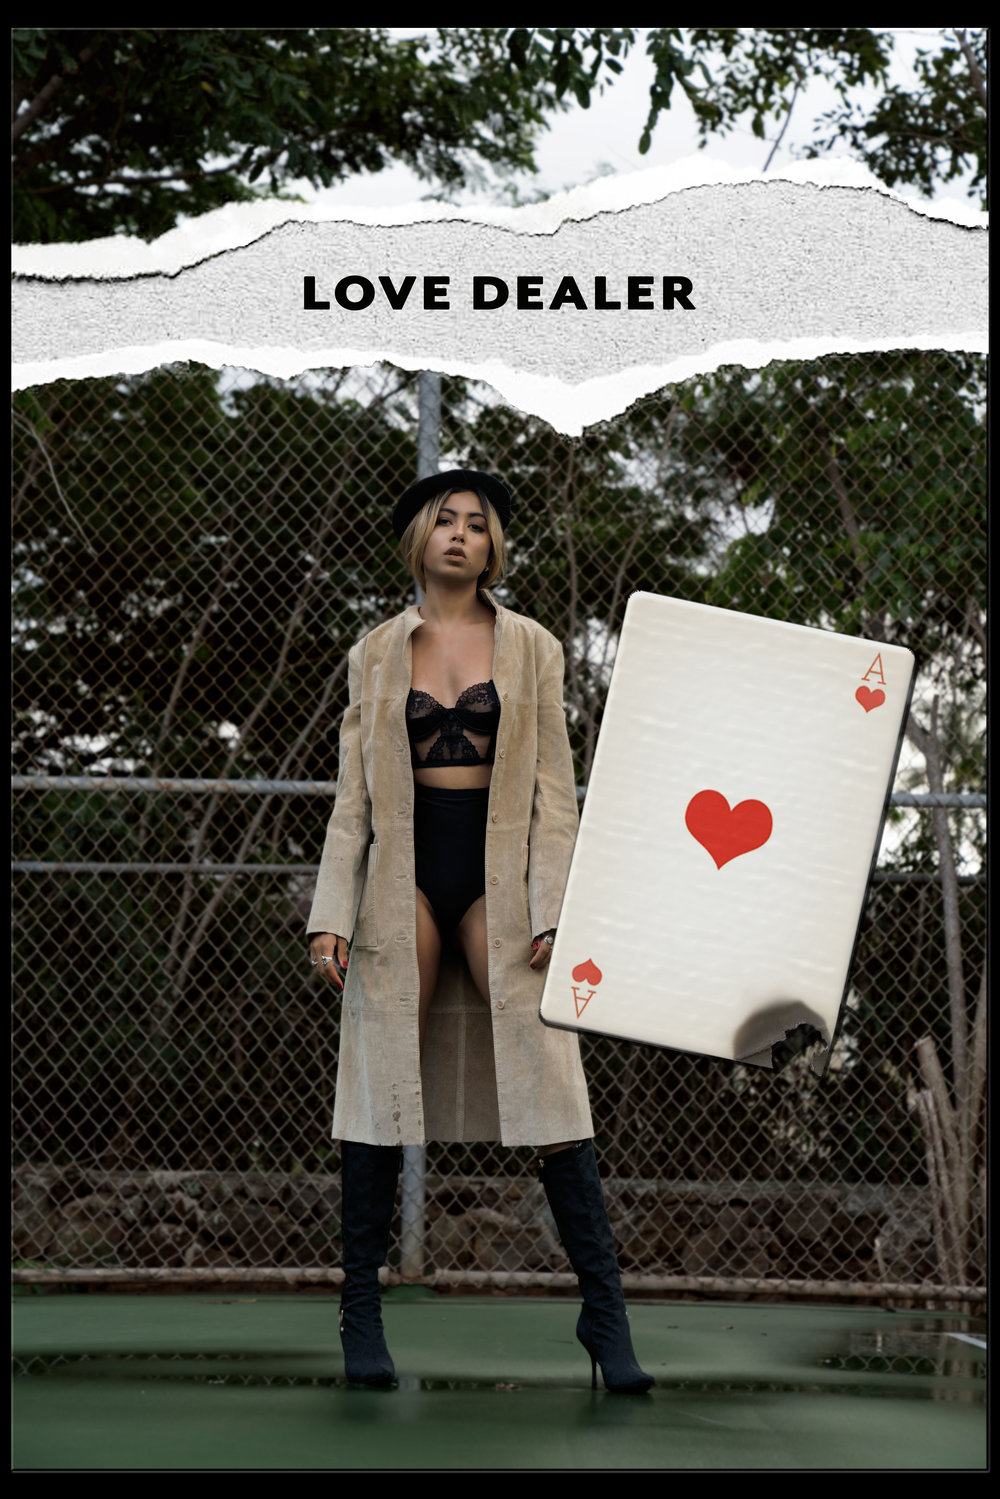 WHAT IS A LOVE DEALER? - Love has often been described as a drug.So a Love Dealer is no different from a drug dealer in my eyes.a Love Dealer is someone who gives another person